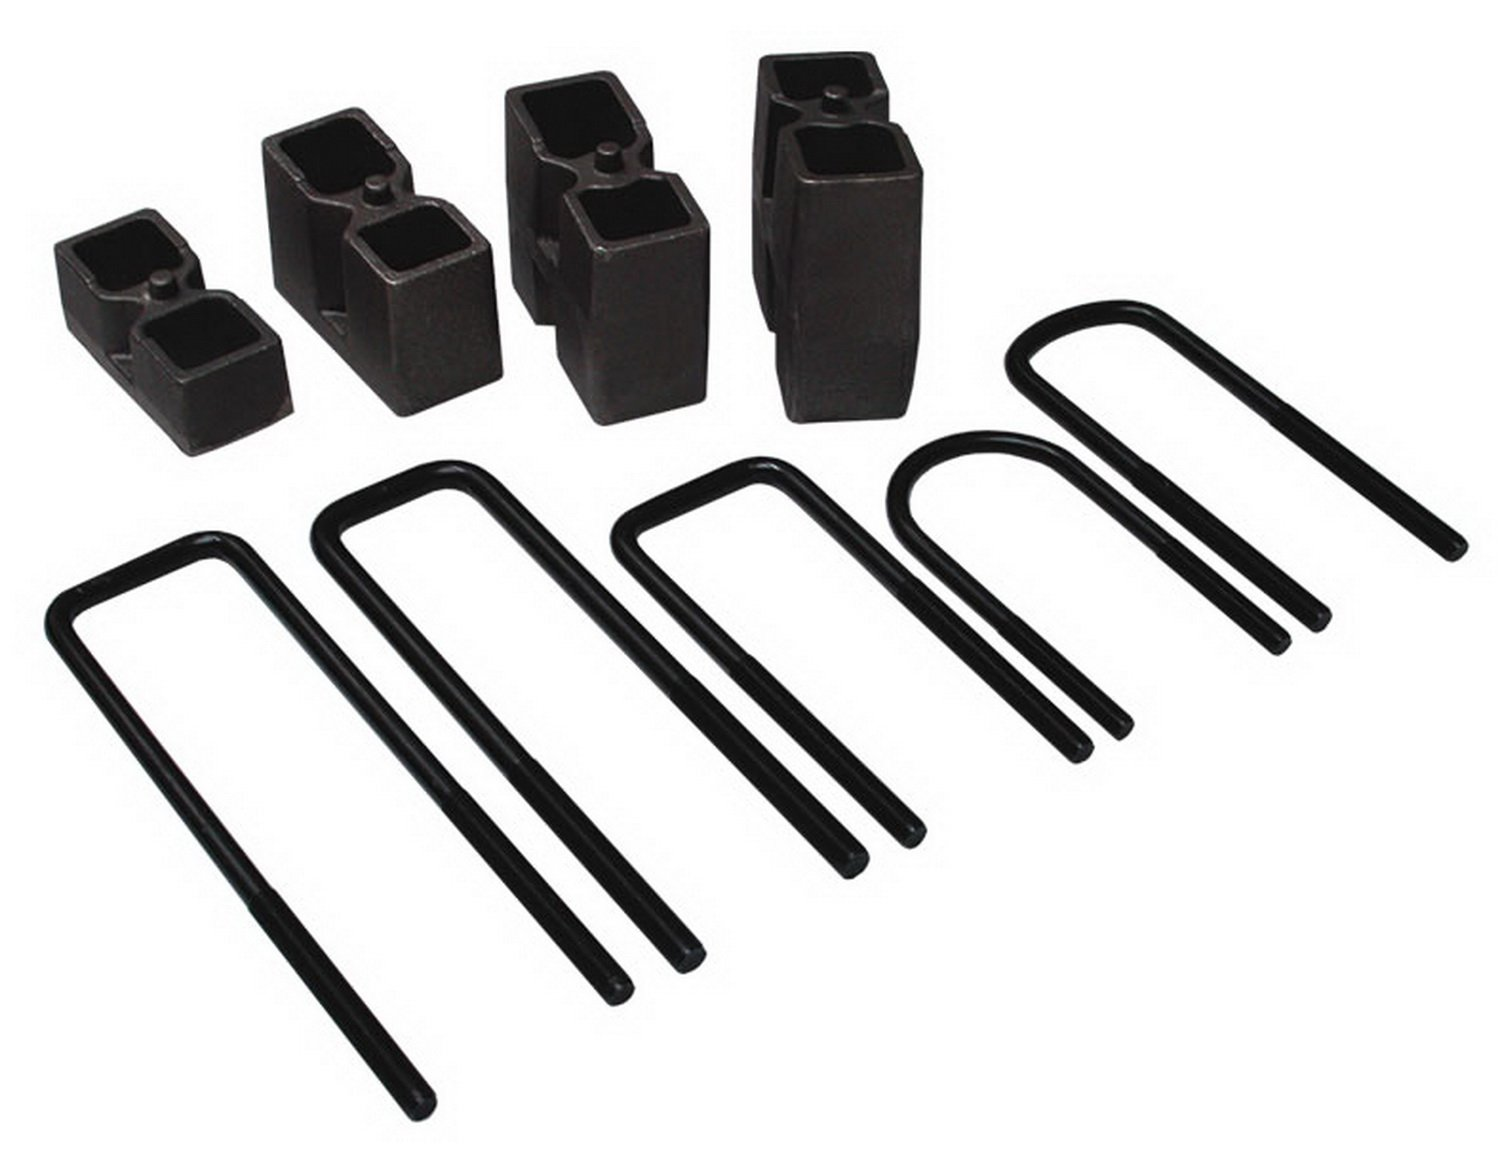 Skyjacker BUK2082 - Skyjacker Blocks & U-Bolt Kits